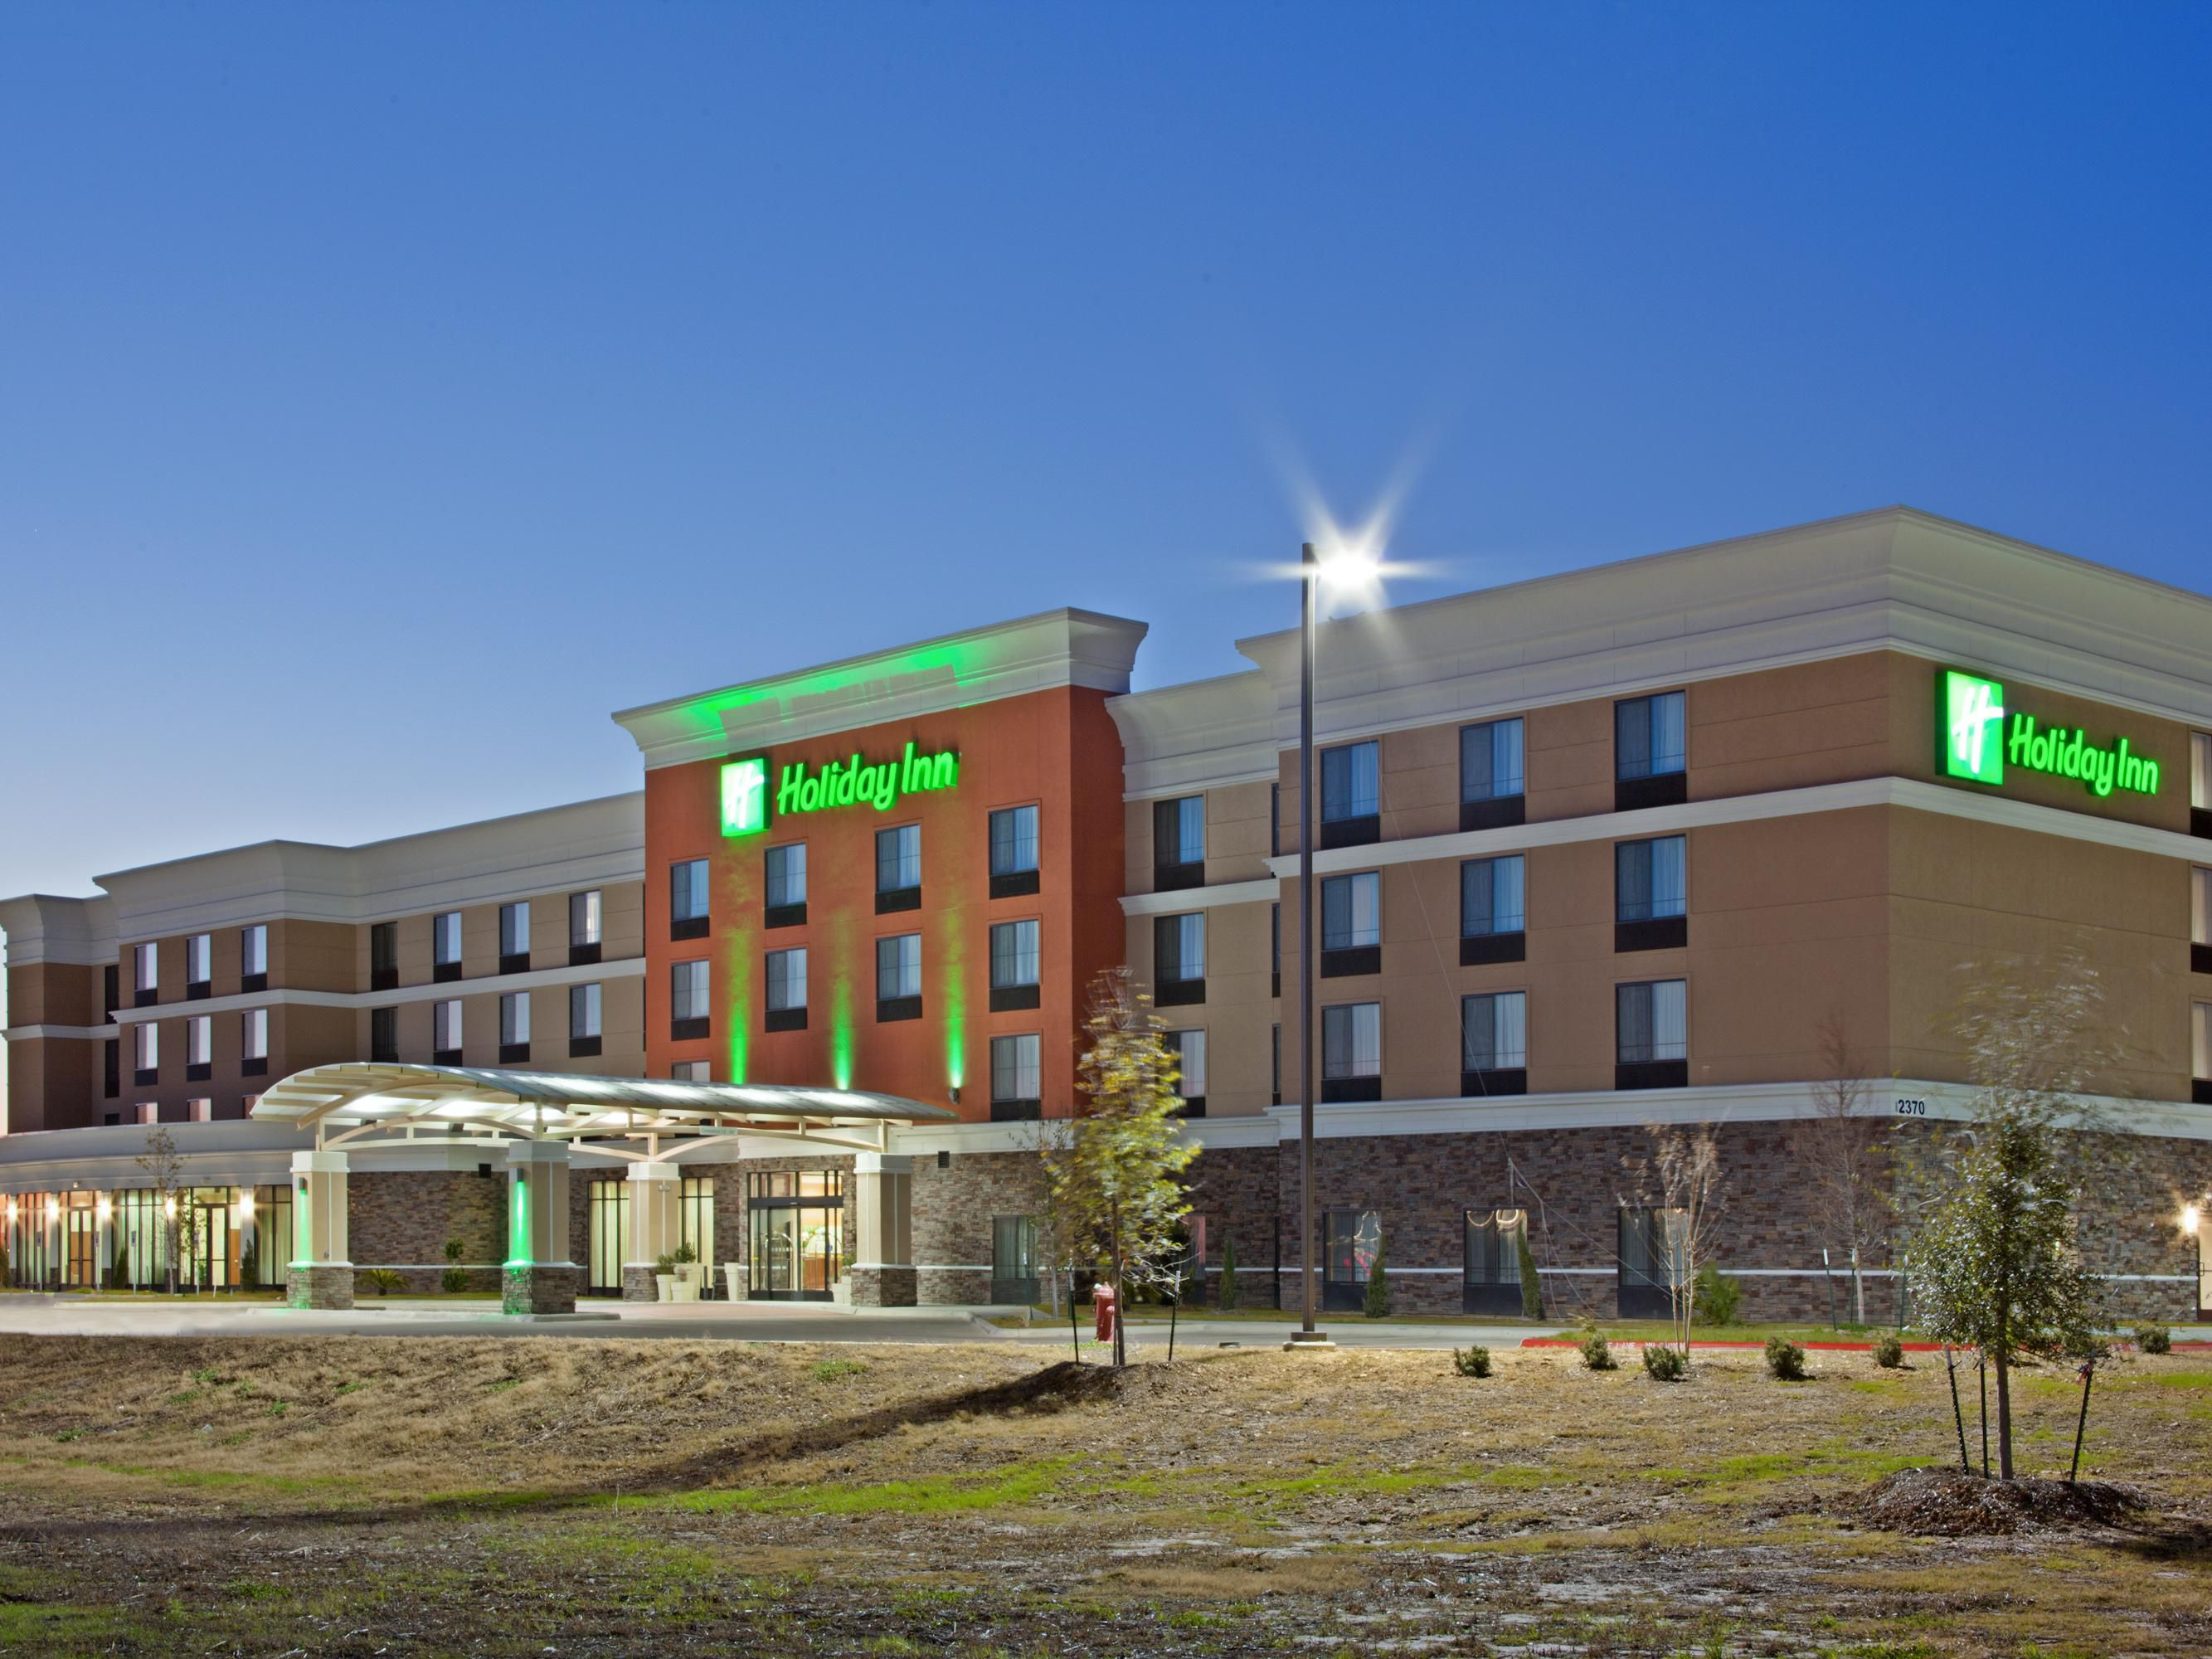 Holiday Inn Austin North - Round Rock Hotel by IHG